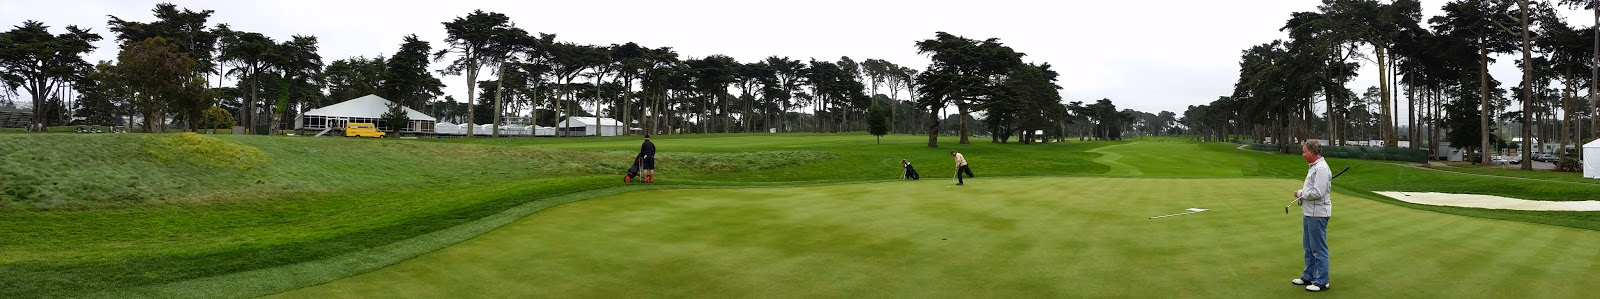 Harding Park 9th green panorama